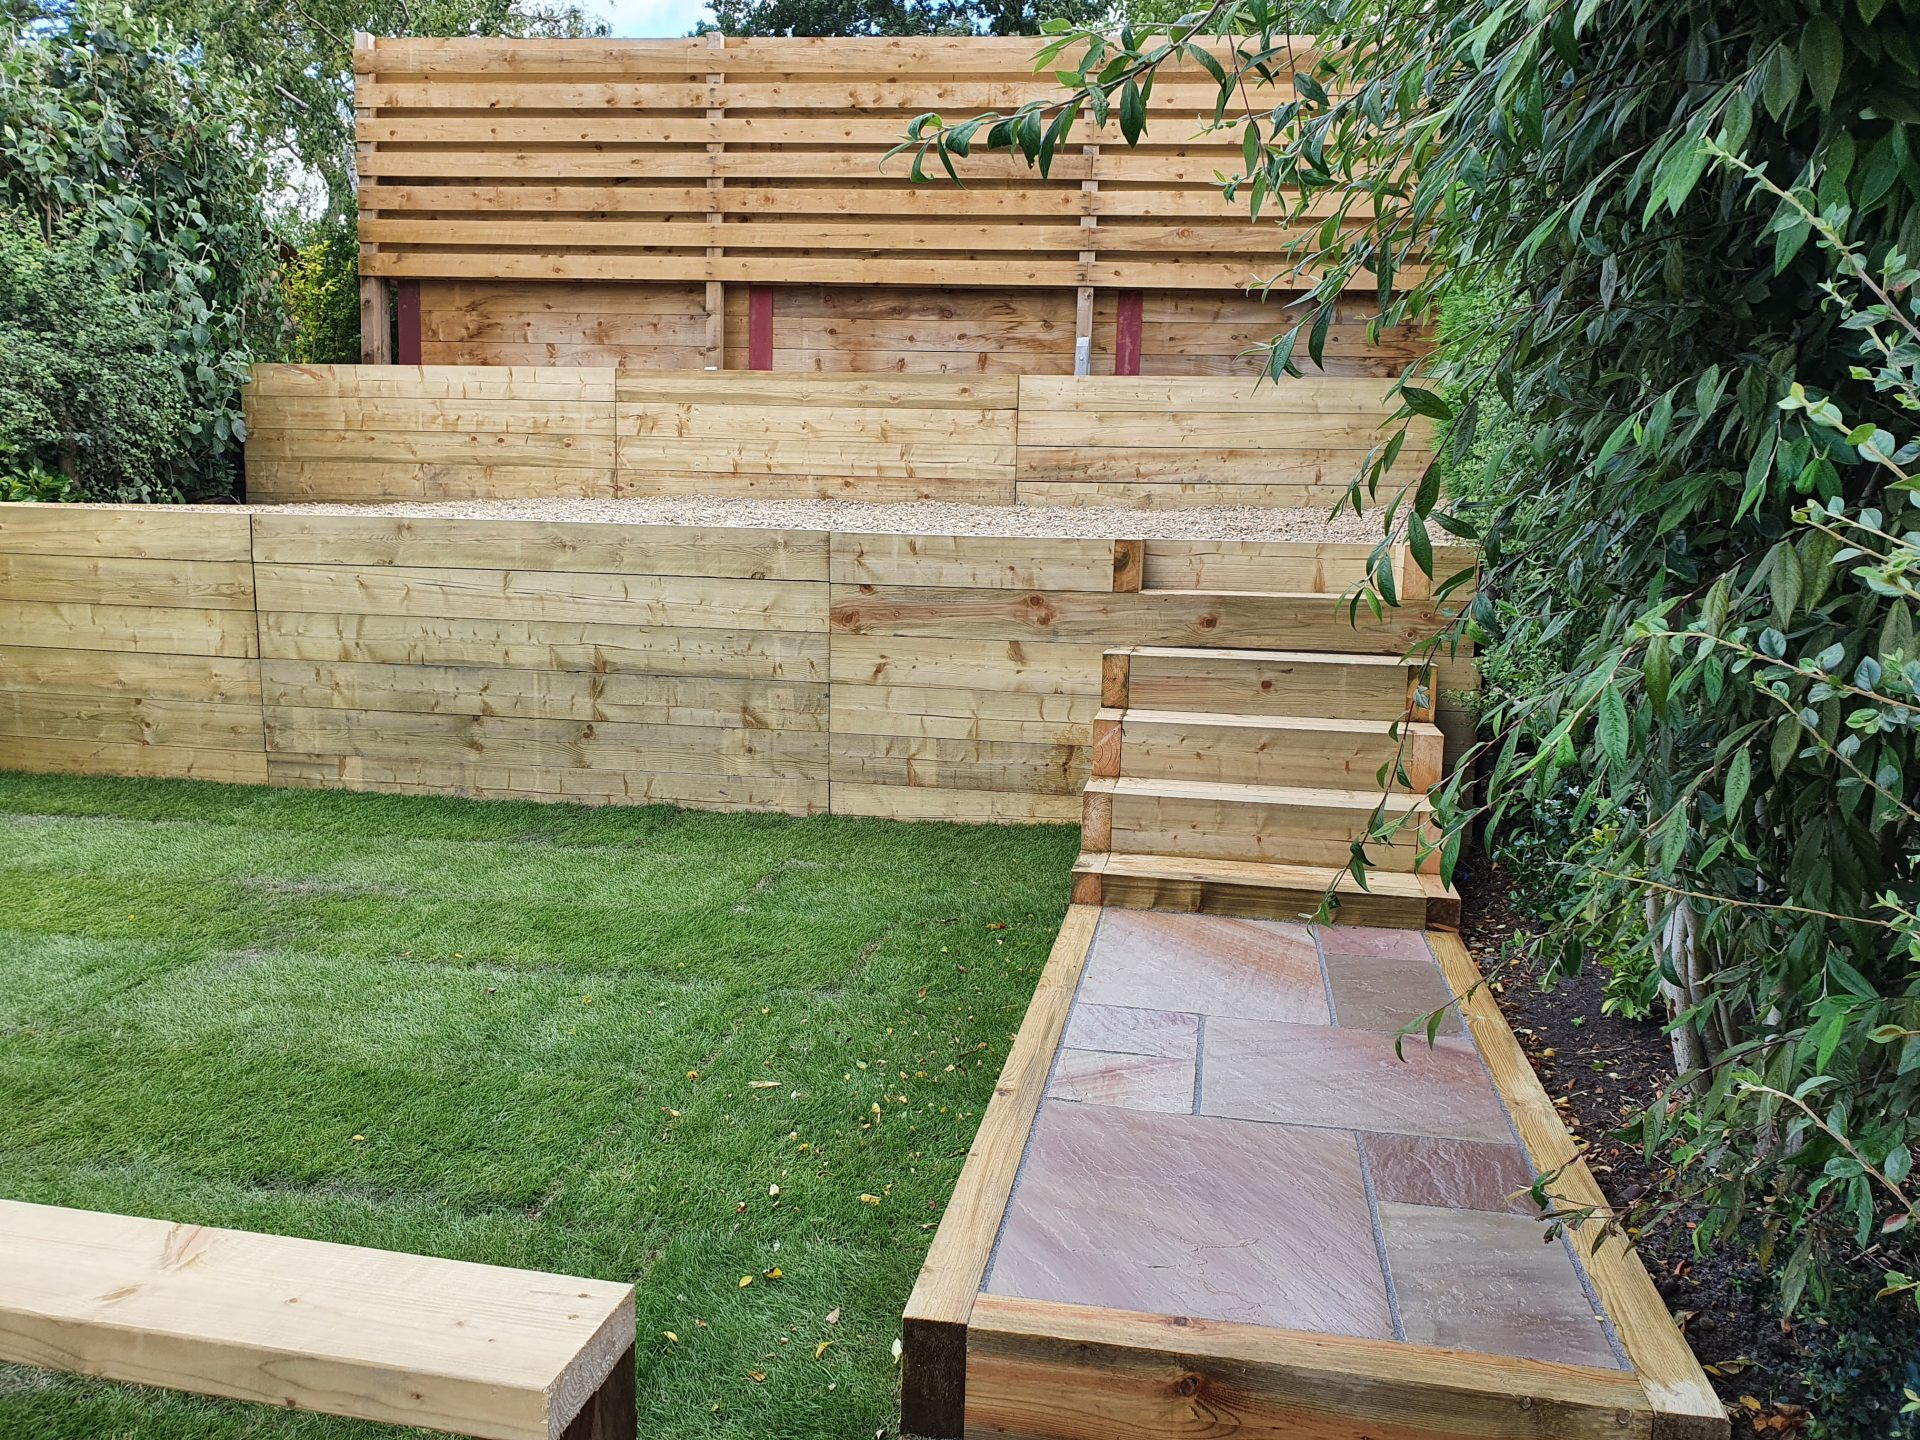 Tiered multi level garden wooden sleeper retainer walls, steps and newly laid turf